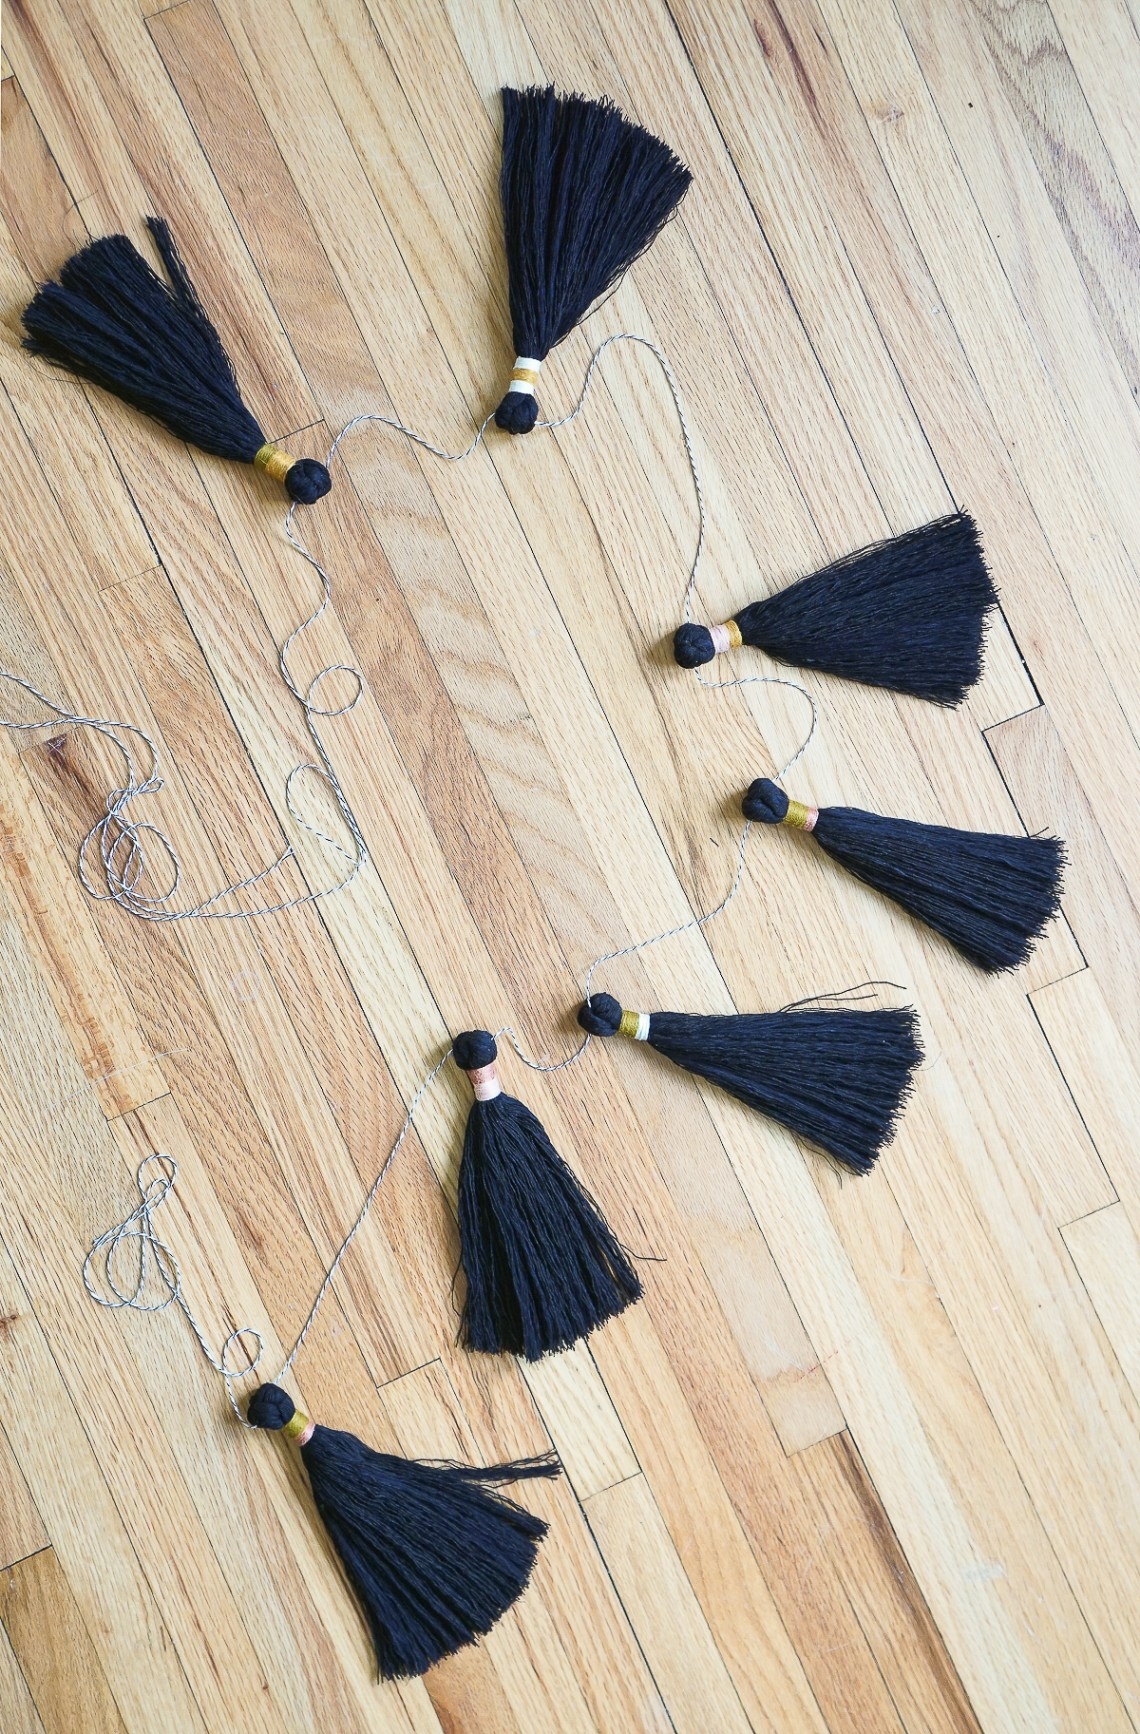 DIY an easy tassel garland with Sara of The Forest Fern for Holiday decorating. Great for hanging across windows, the fireplace mantle and the tree.